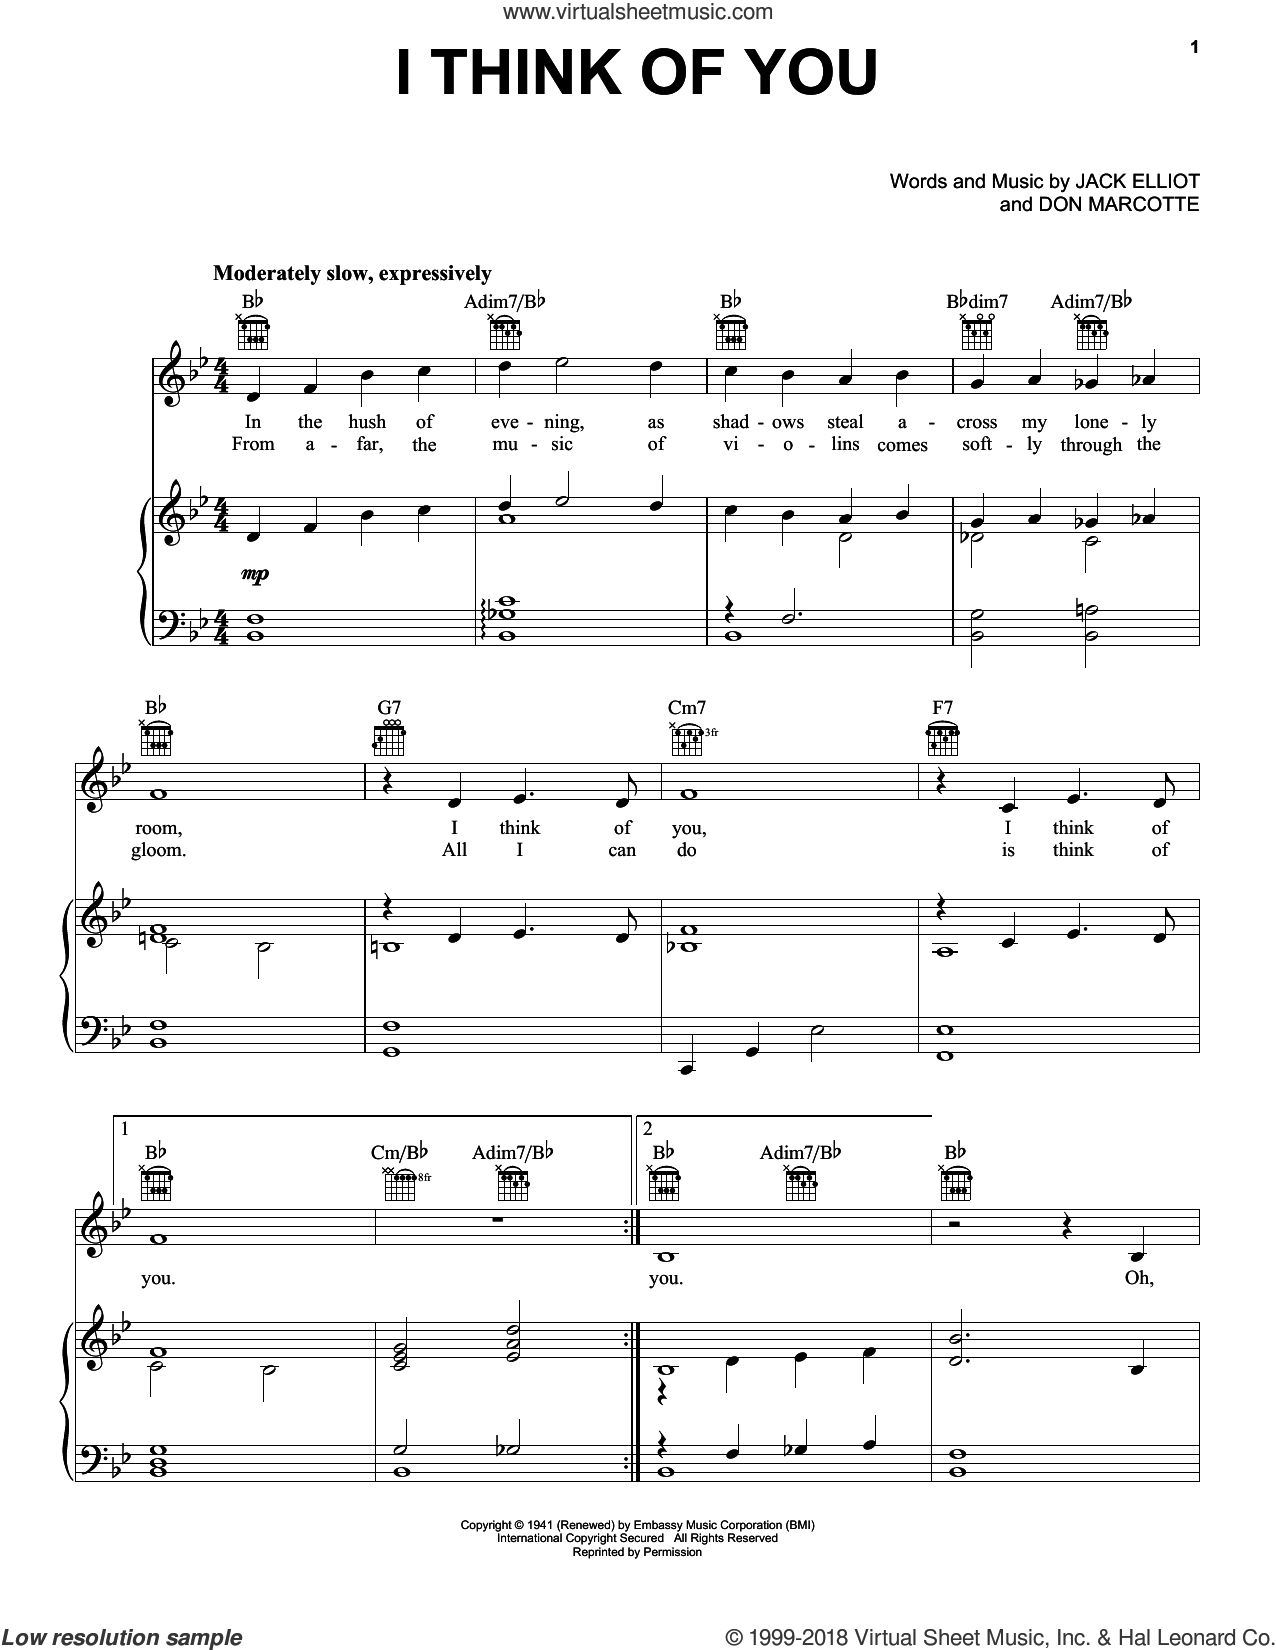 I Think Of You sheet music for voice, piano or guitar by Frank Sinatra, Don Marcotte and Jack Elliot, intermediate skill level